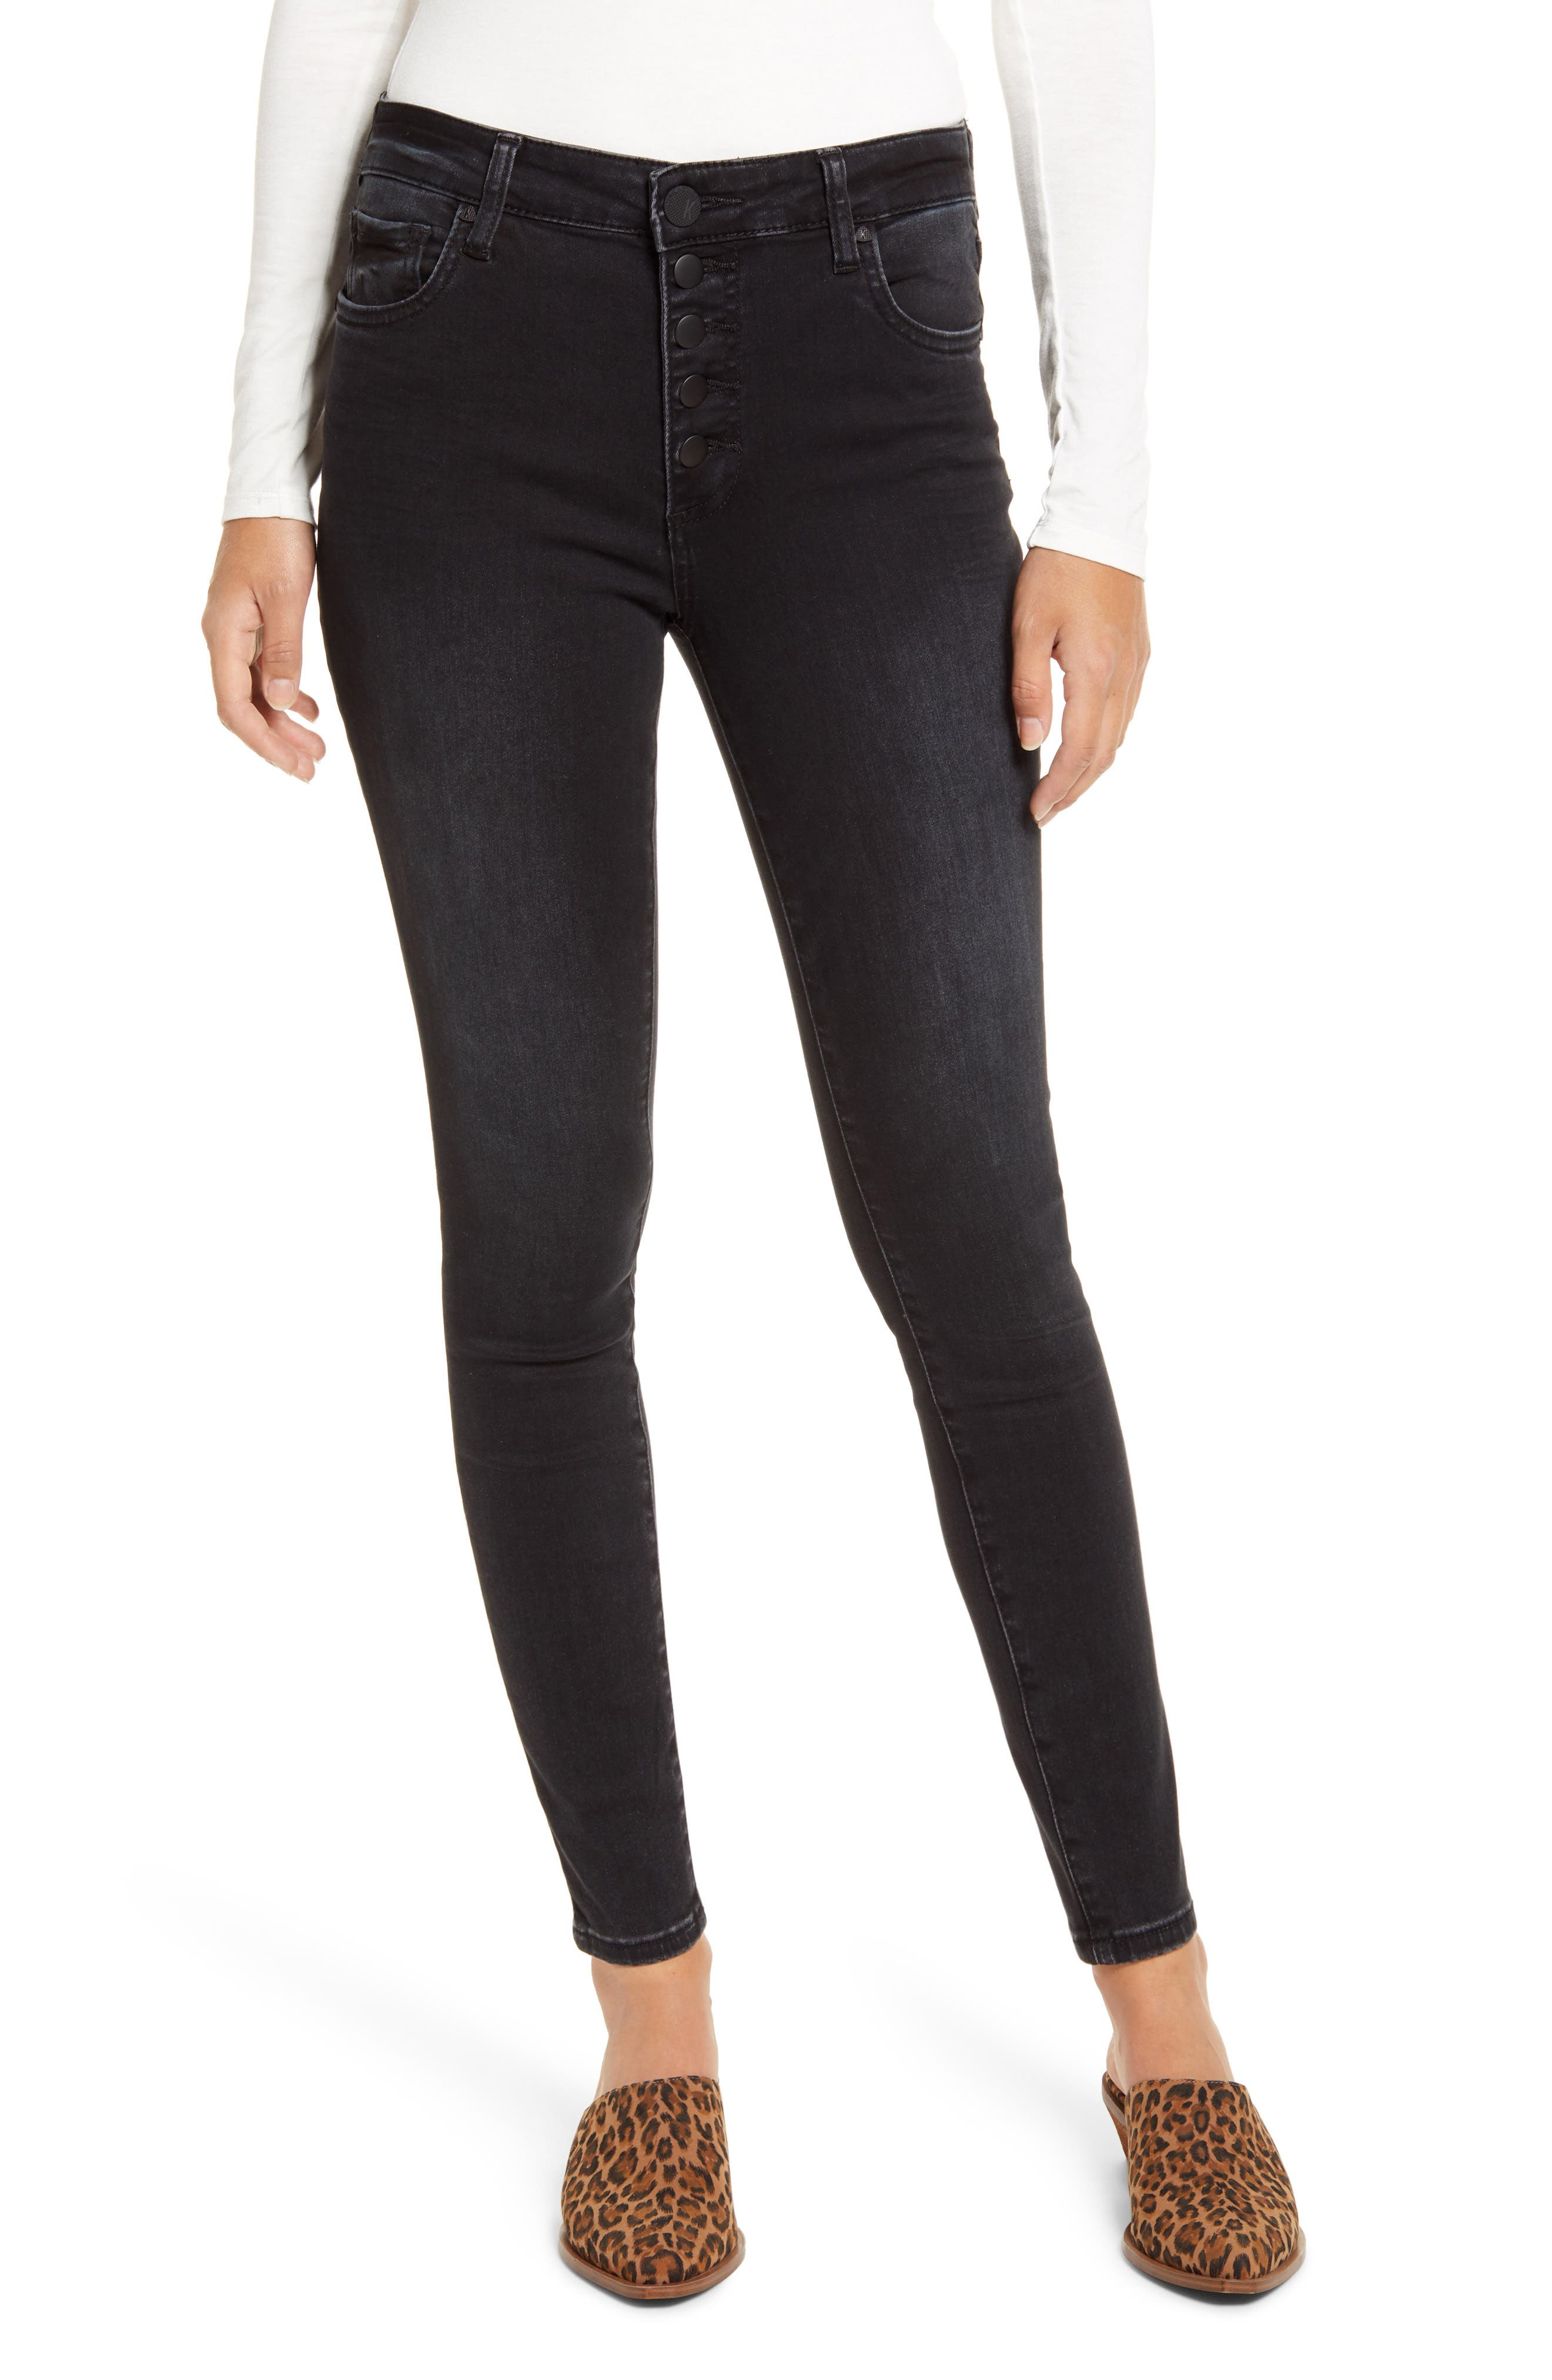 KUT from the Kloth Donna High Waist Button Fly Jeans (Continually)   Nordstrom